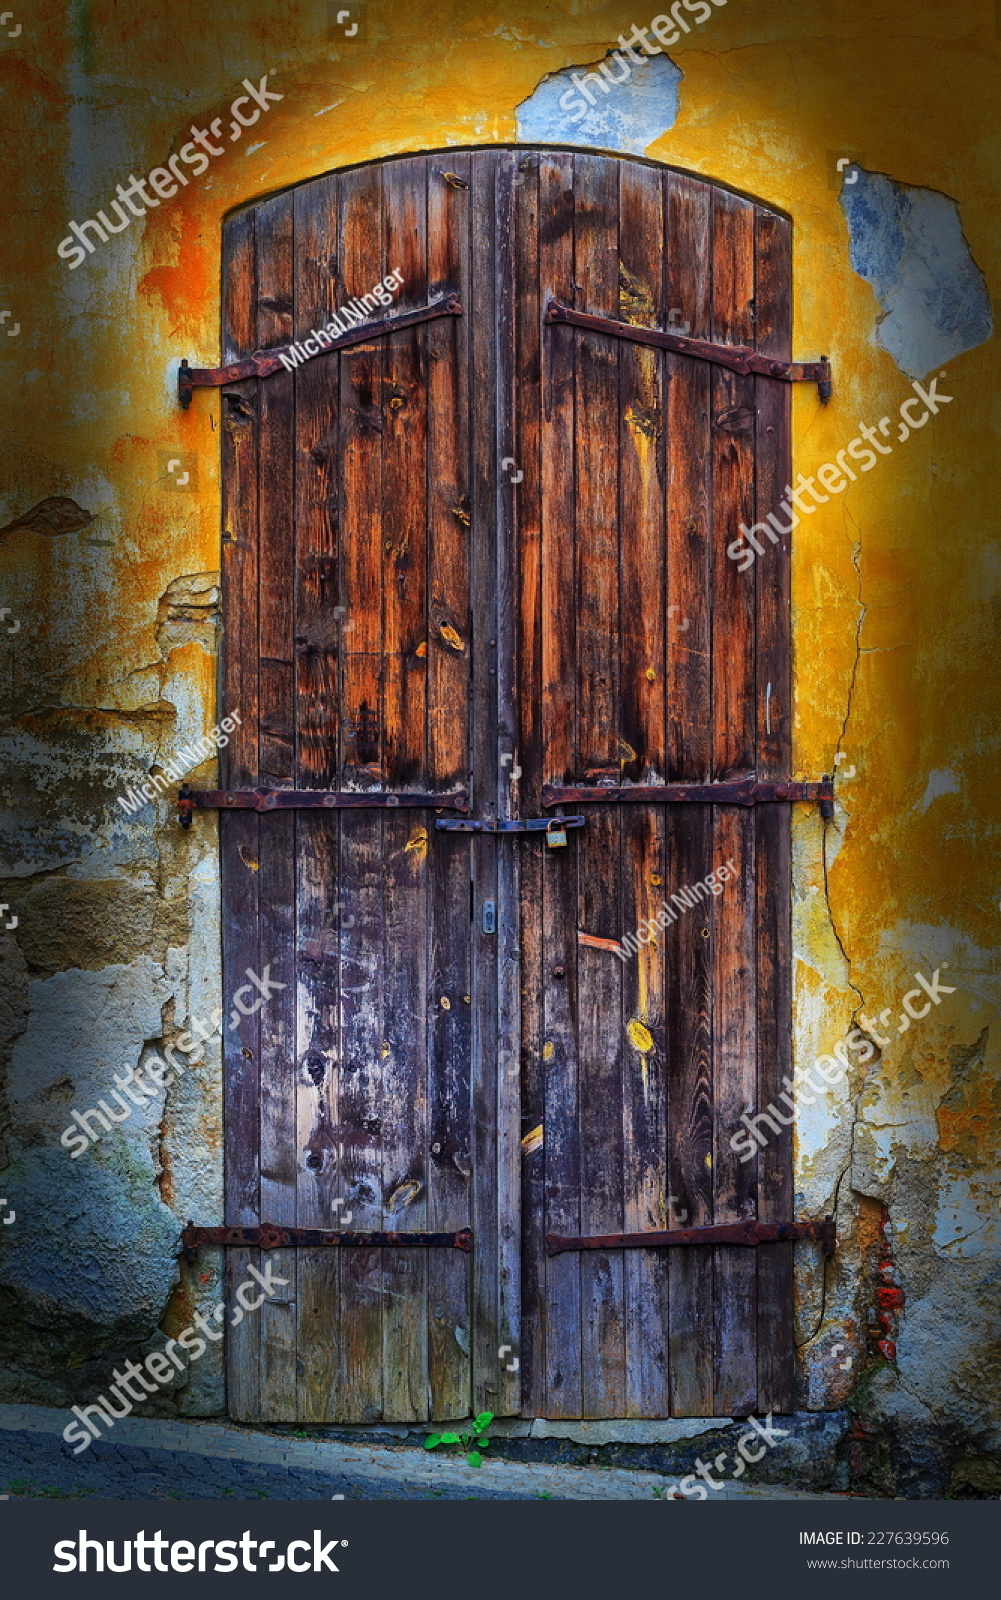 Old wooden door closed several years